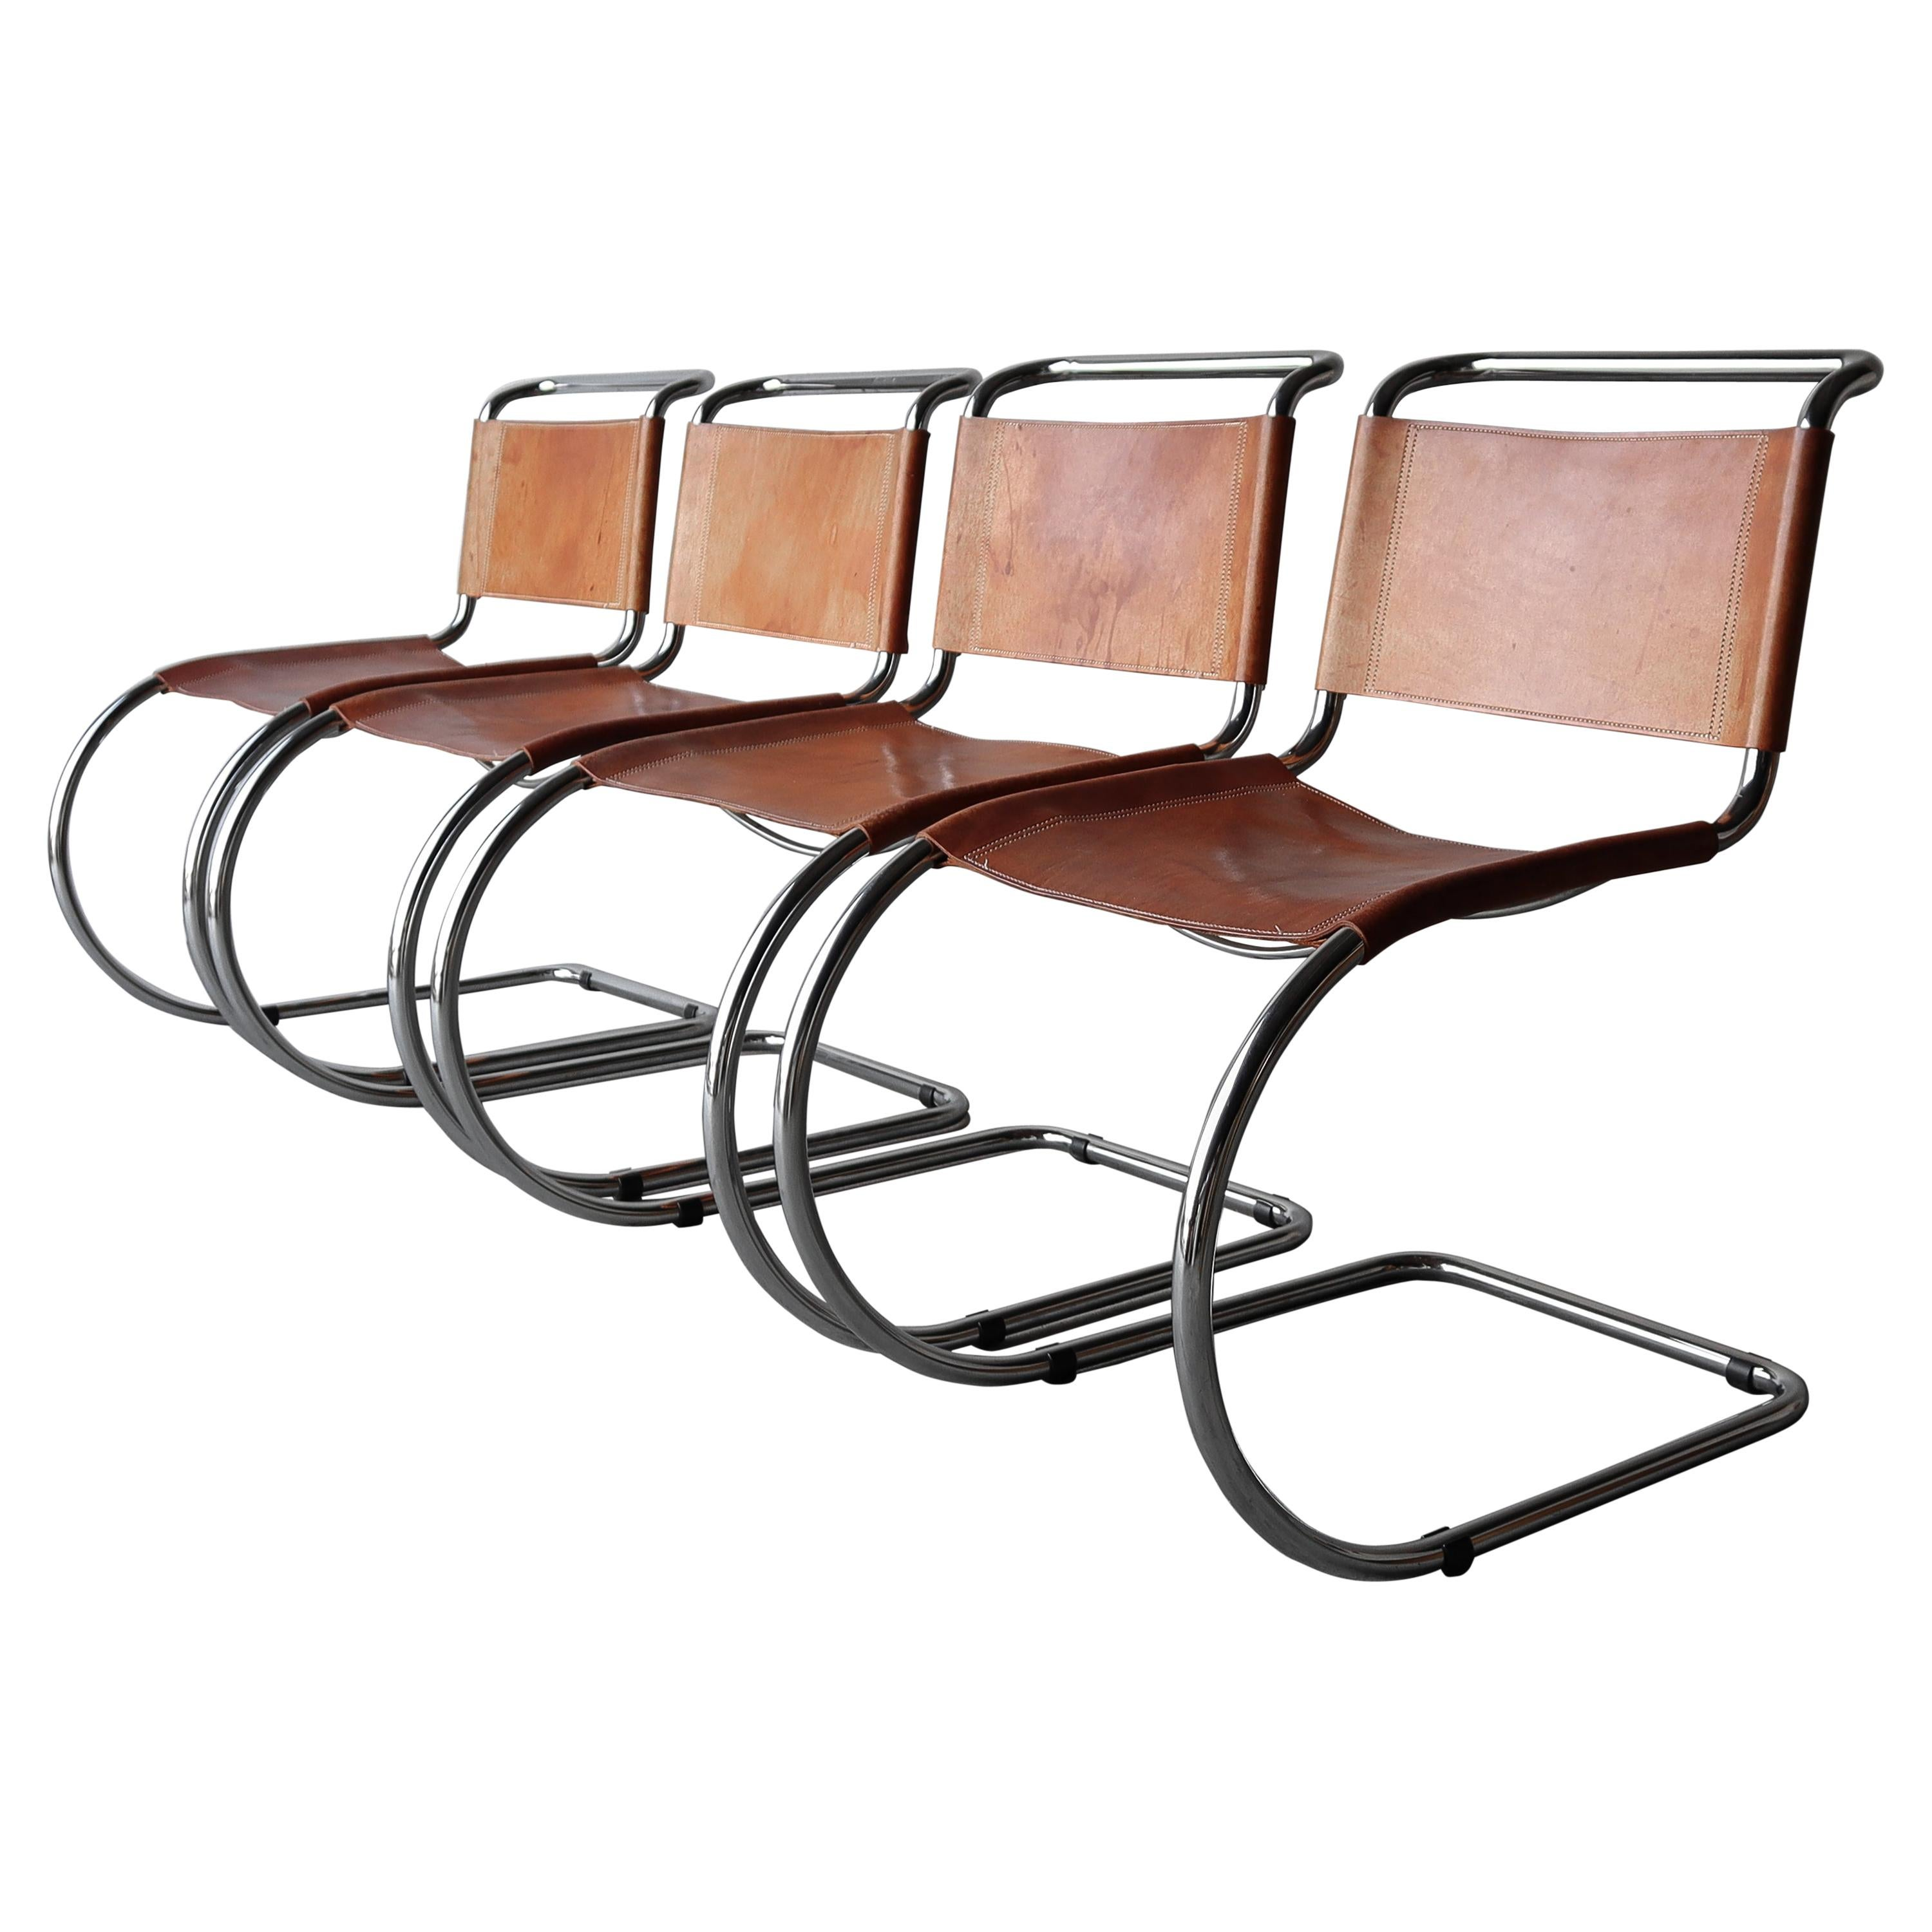 Set of 4 Vintage Leather and Chrome Spoleto MR10 Dining Chairs